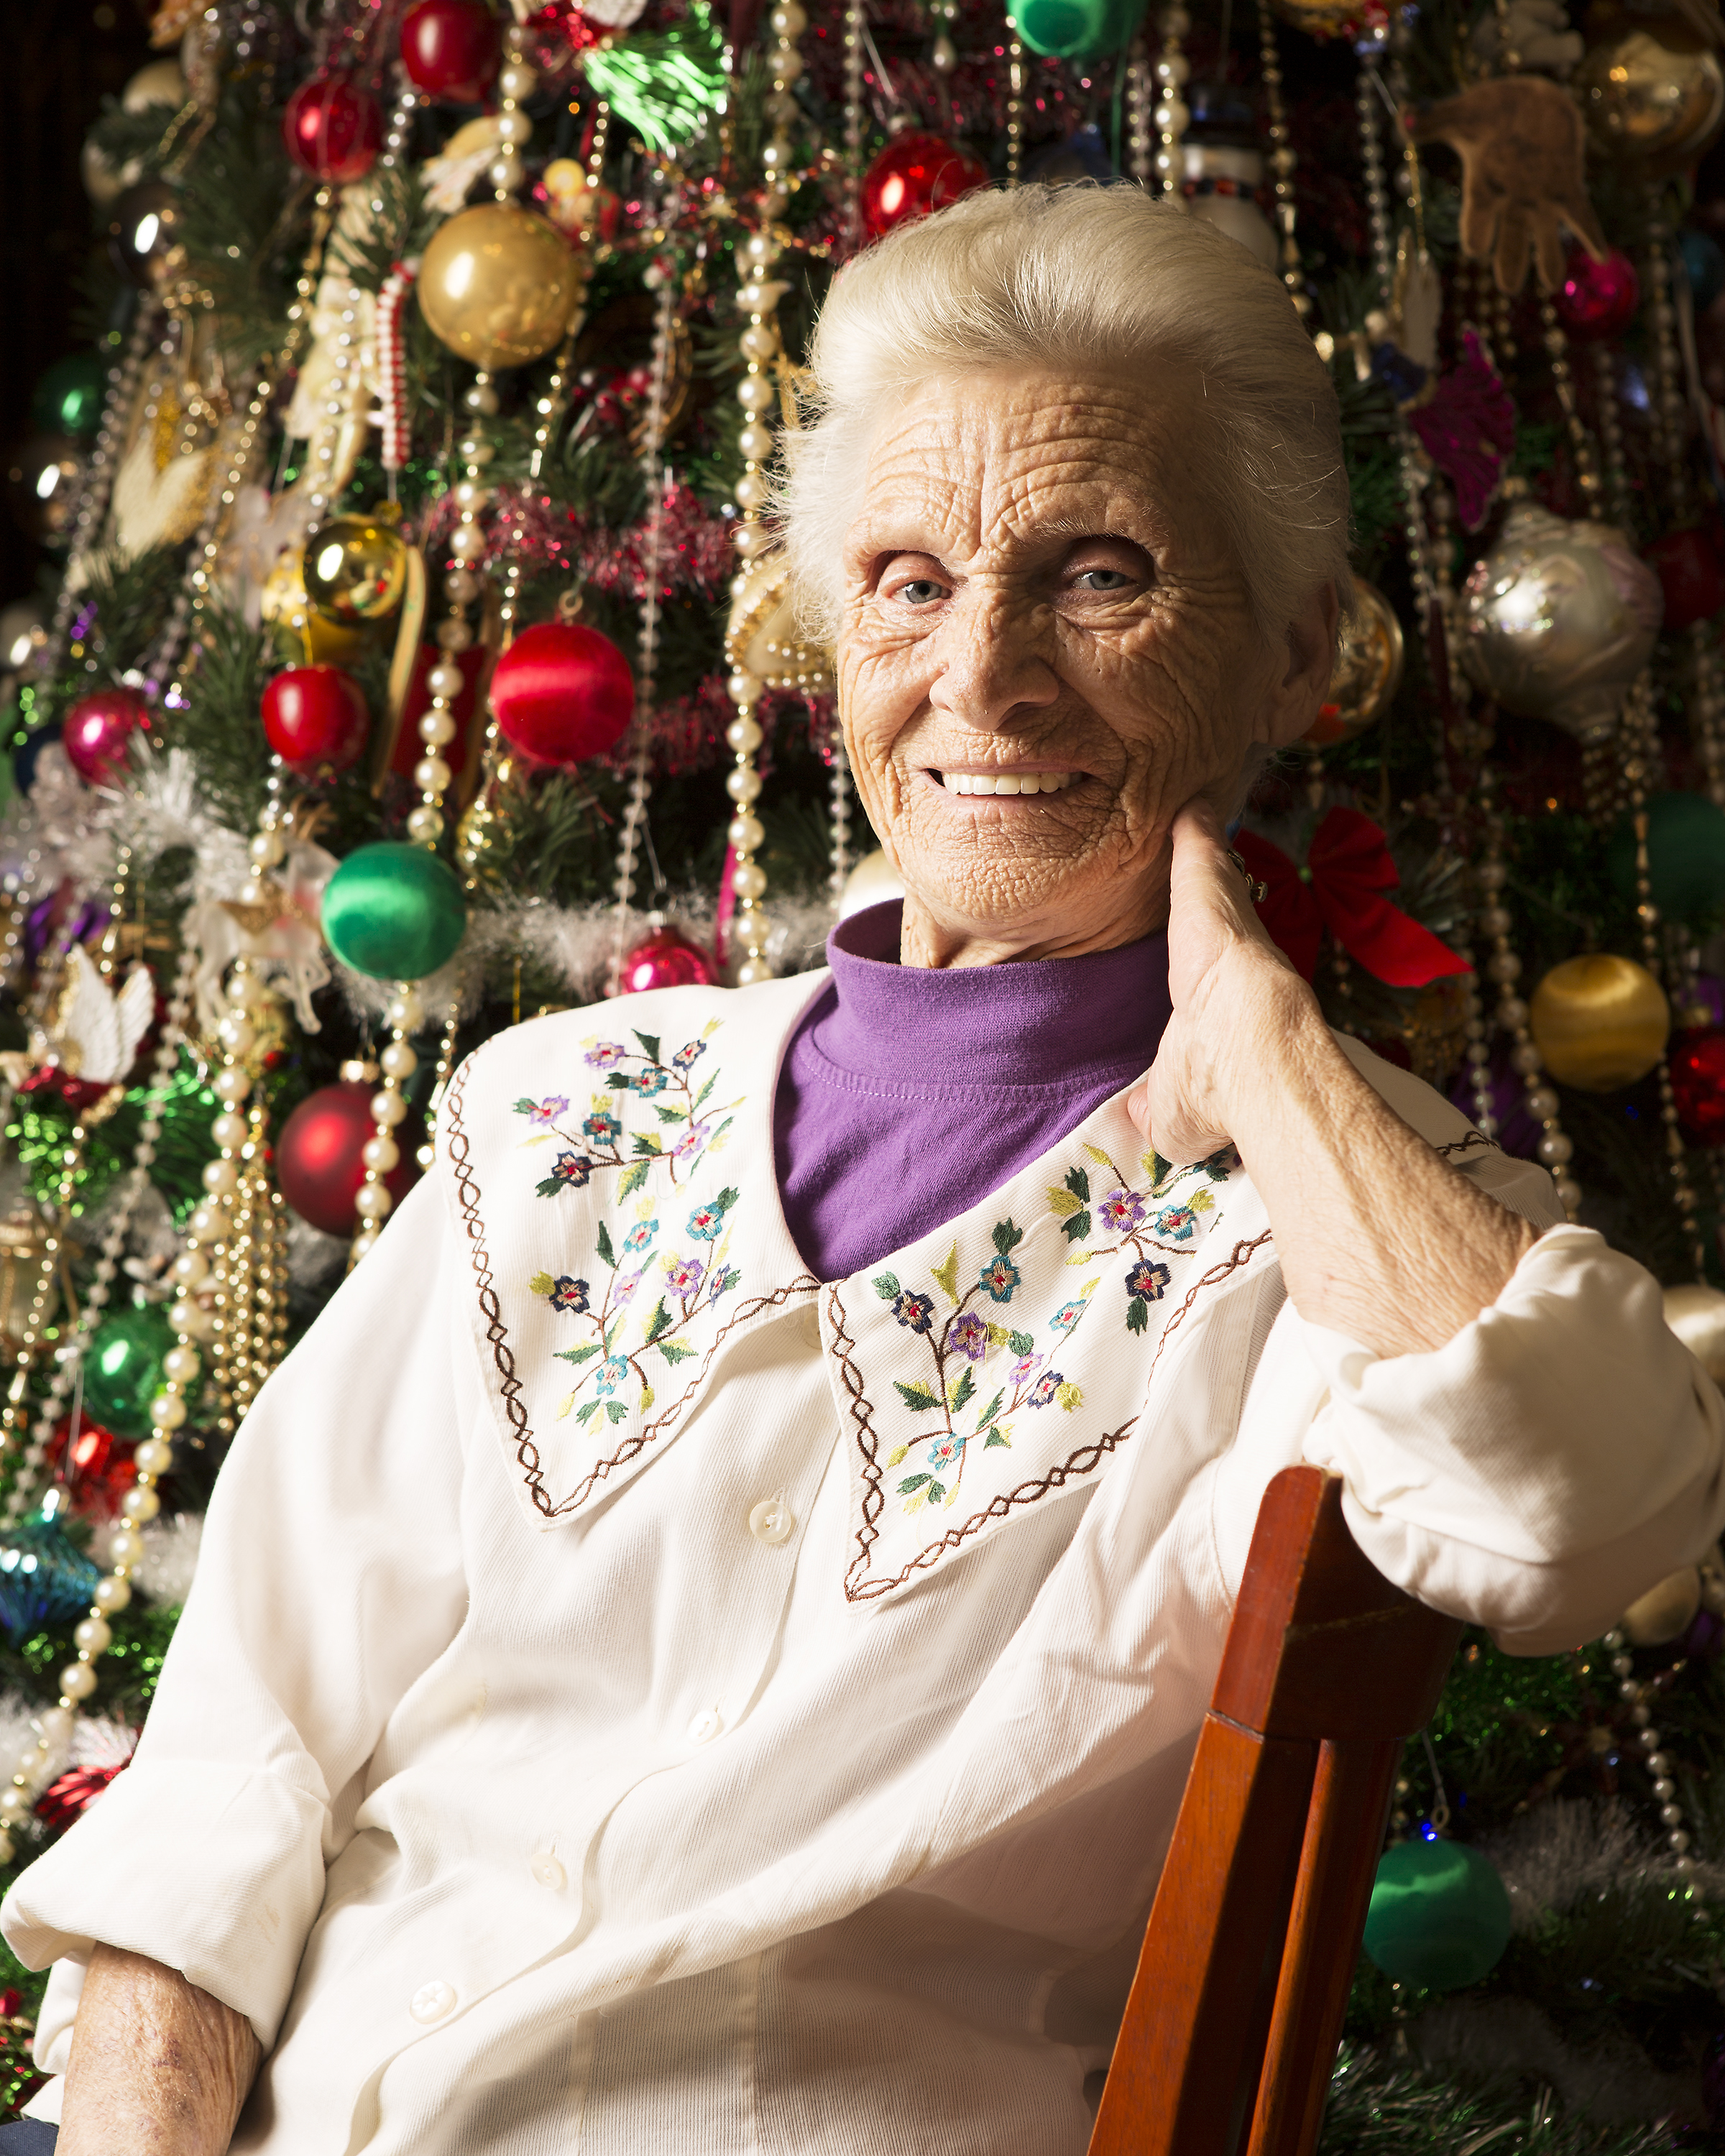 The Queen of Christmas,  Mrs. McMahon